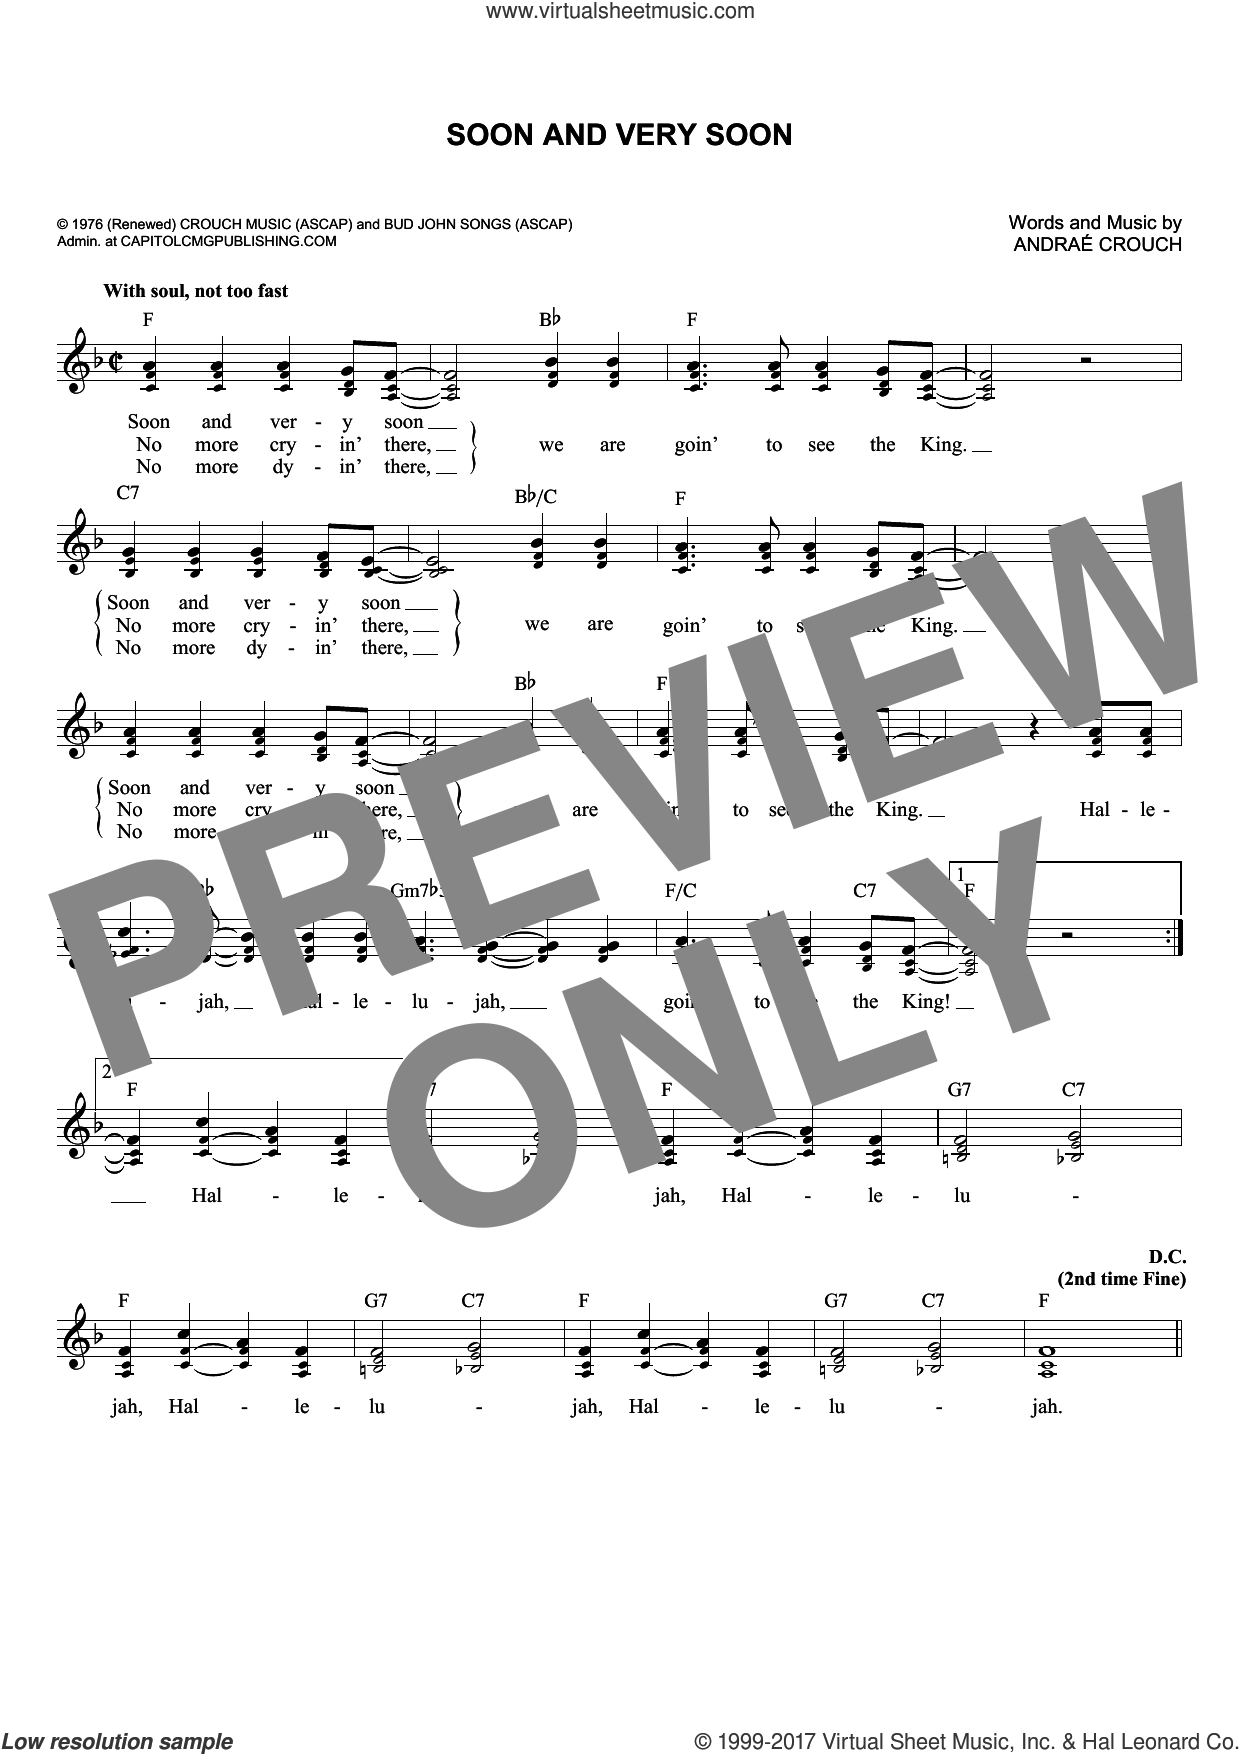 Soon And Very Soon sheet music for voice and other instruments (fake book) by Andrae Crouch, intermediate skill level